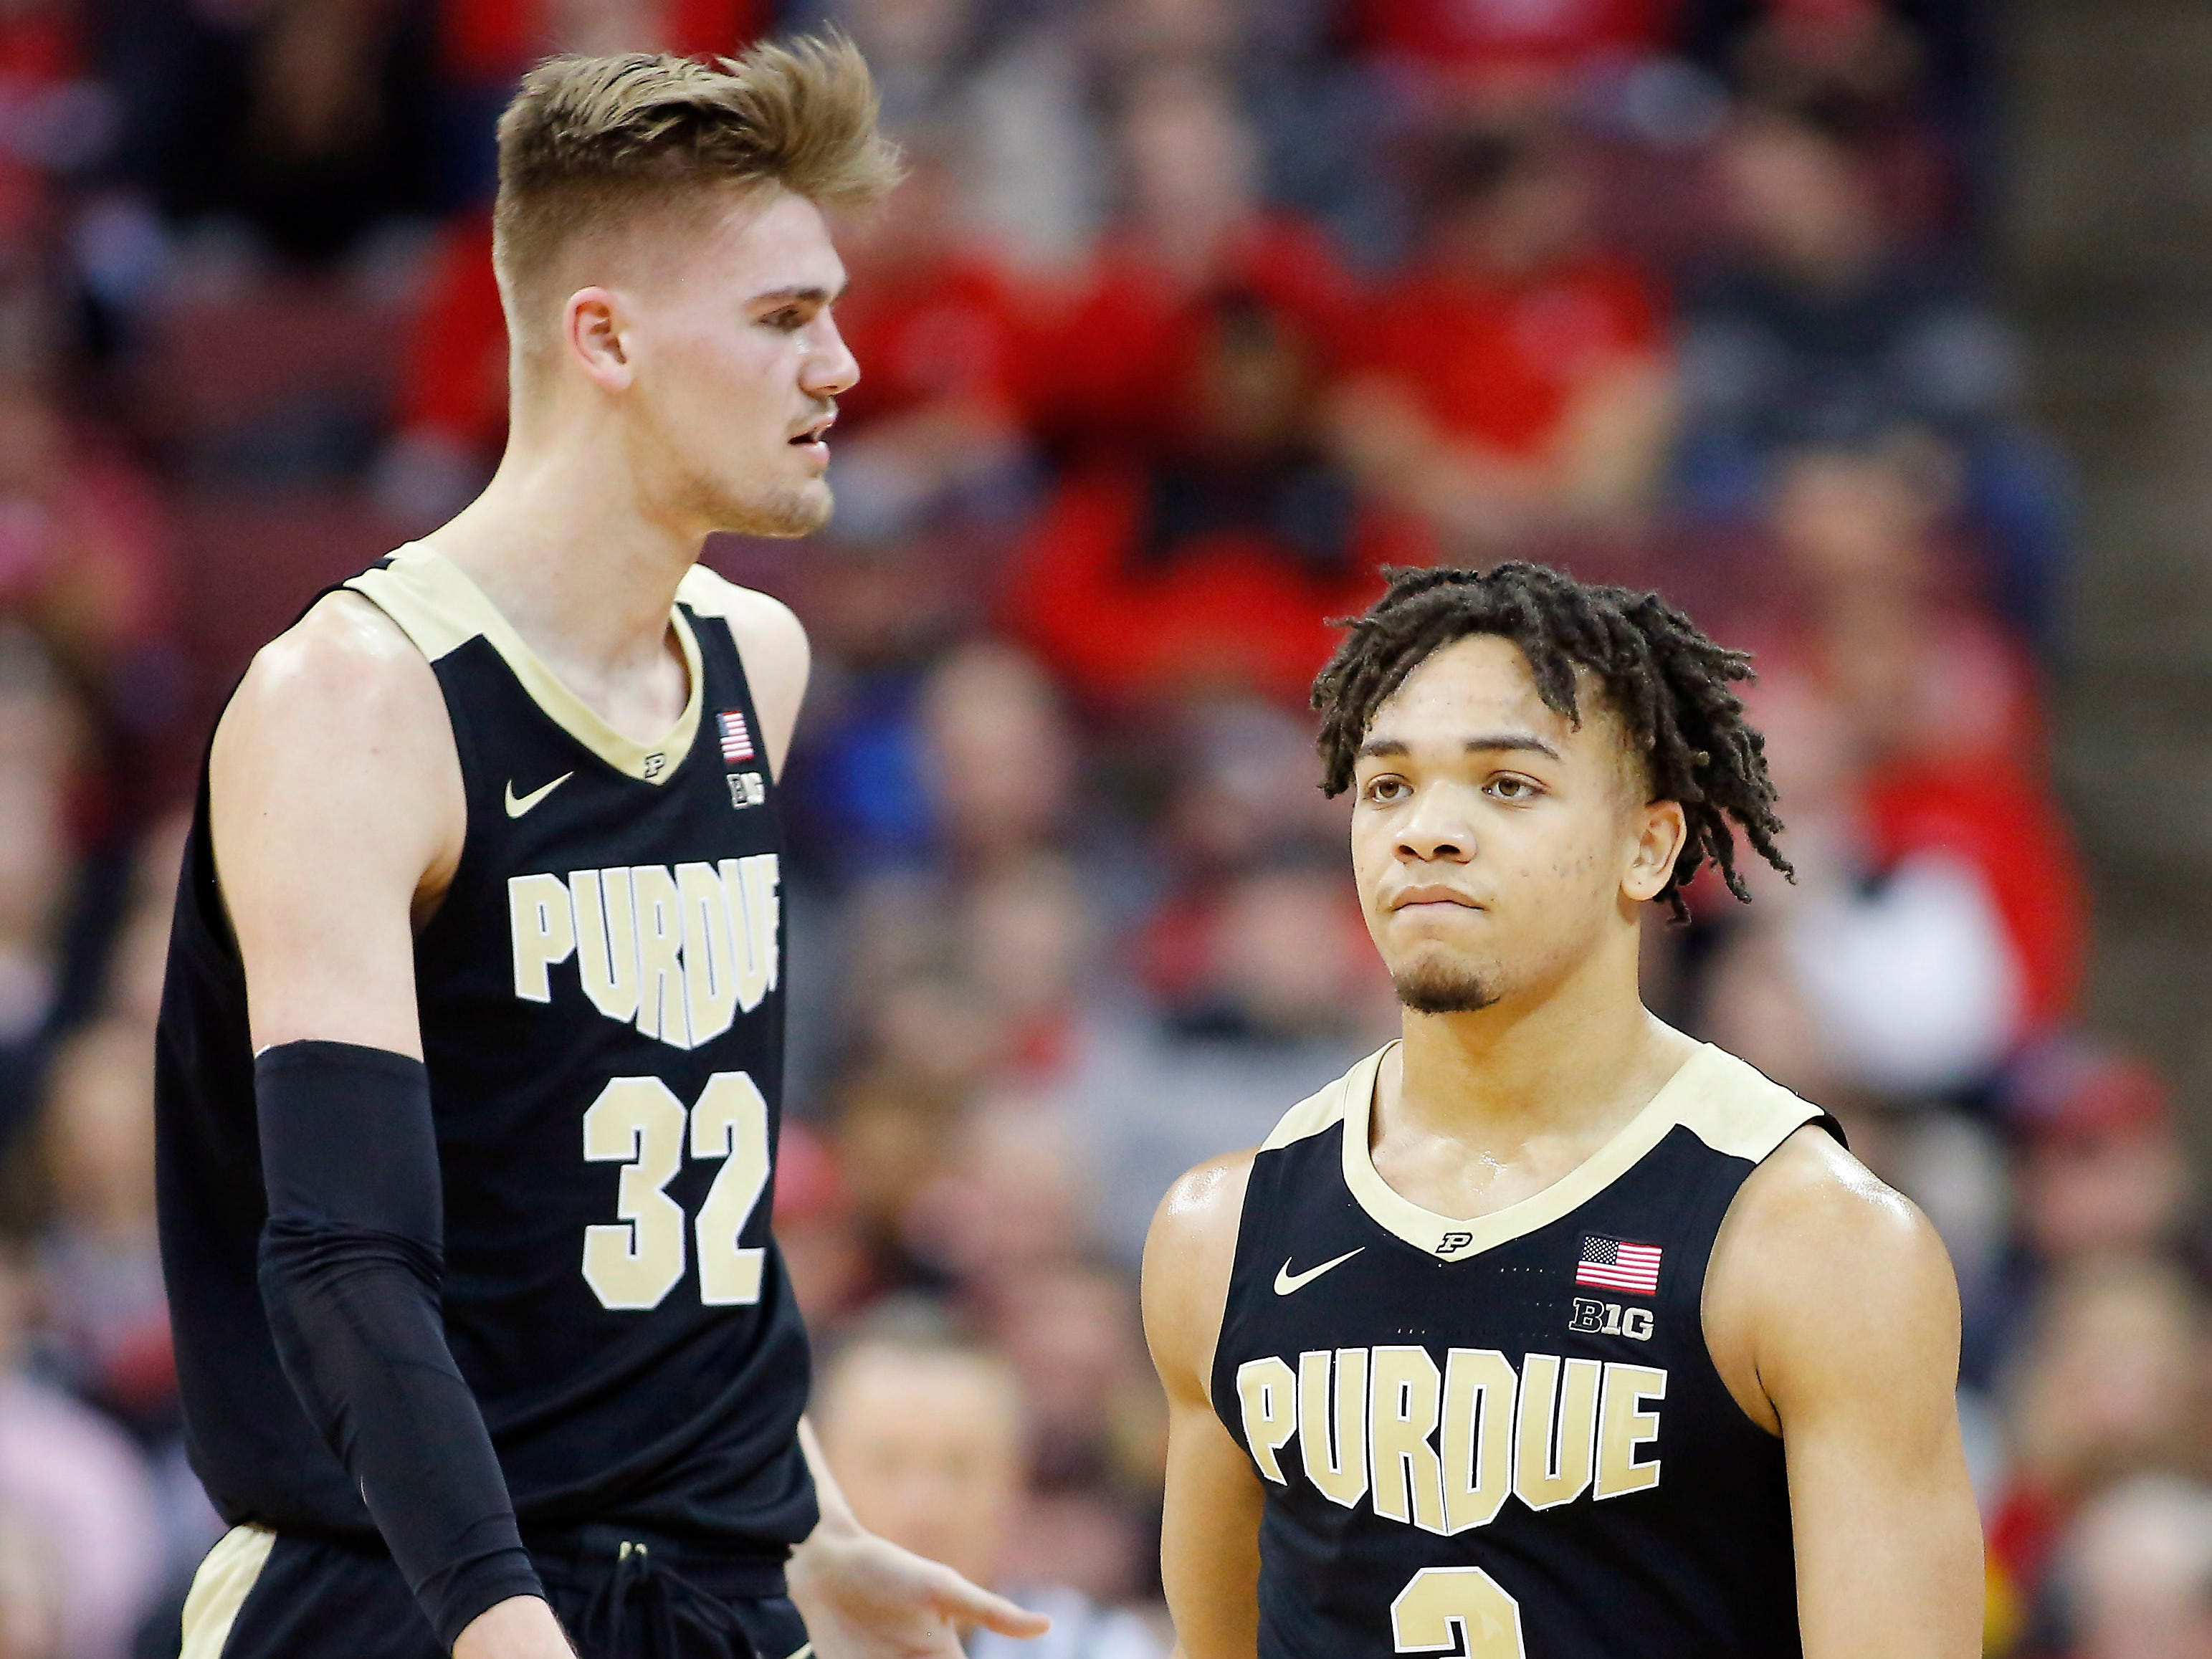 Jan 23, 2019; Columbus, OH, USA; Purdue Boilermakers guard Carsen Edwards (3) and Boilermakers center Matt Haarms (32) celebrate during the first half against the Ohio State Buckeyes at Value City Arena. Mandatory Credit: Joe Maiorana-USA TODAY Sports